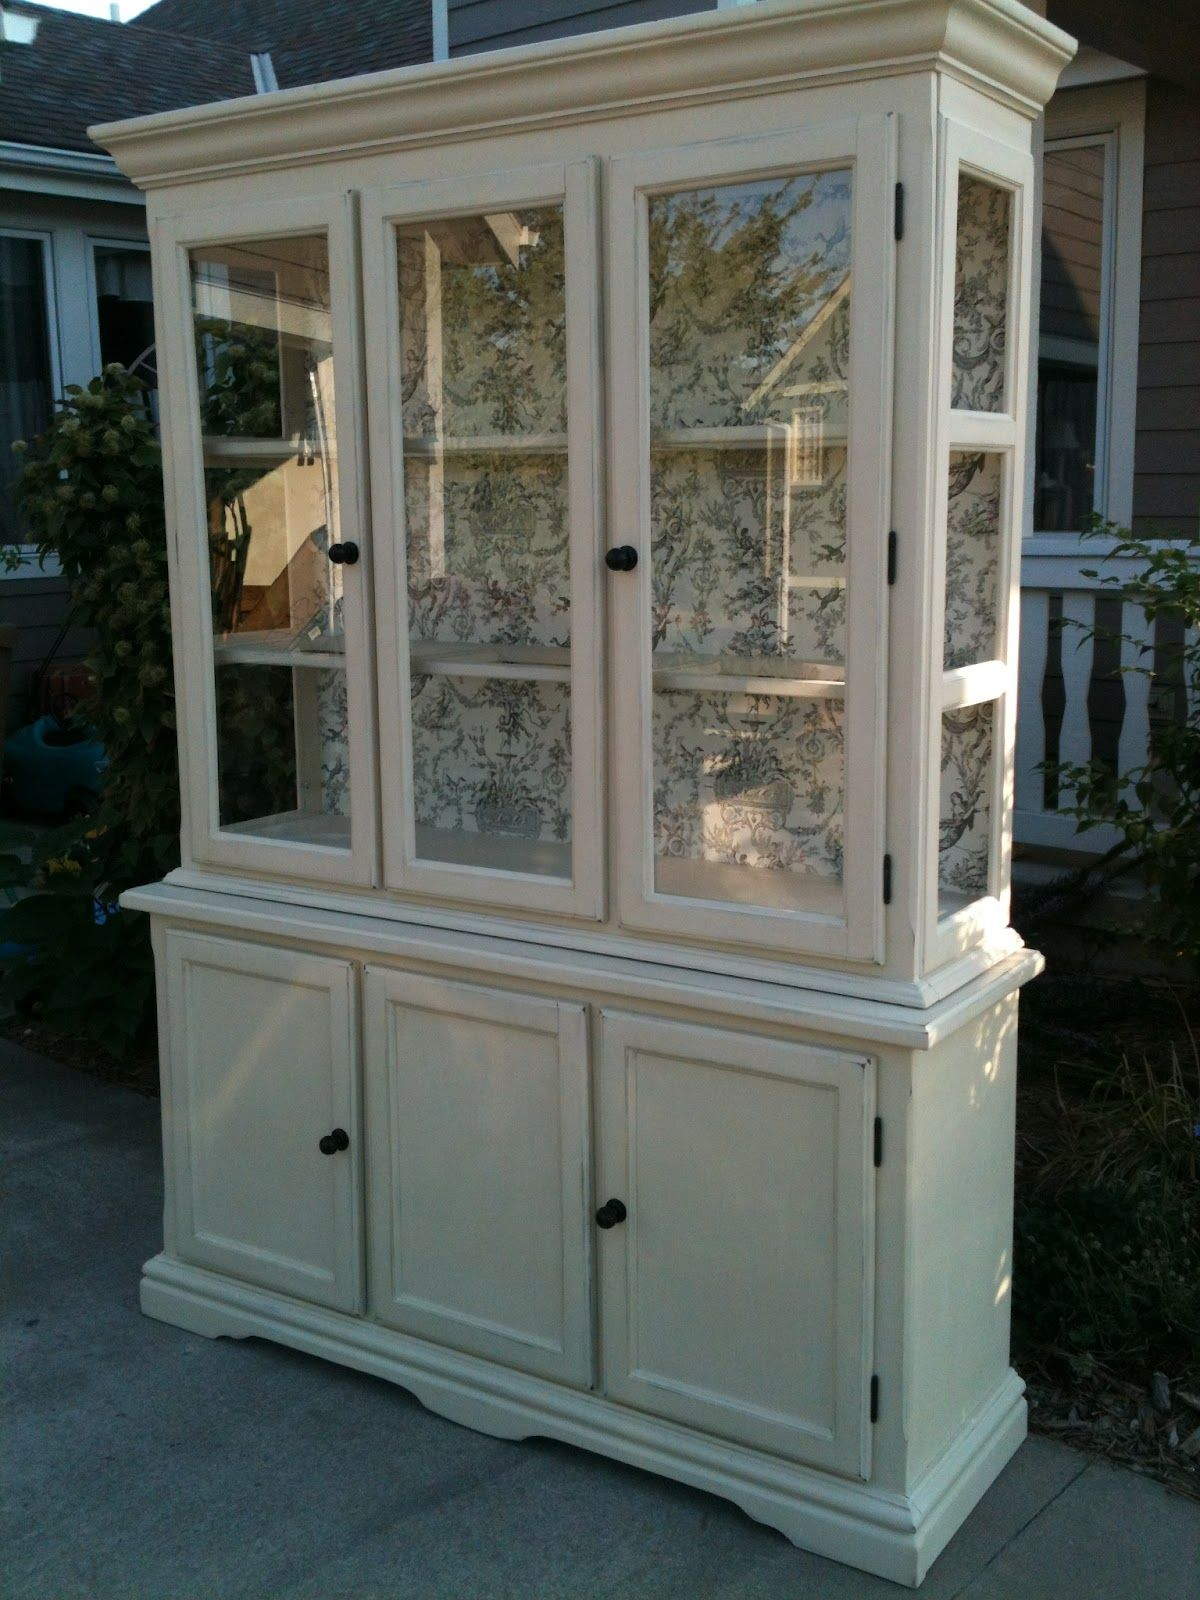 Best China Cabinet Perfection With Images Painting 400 x 300